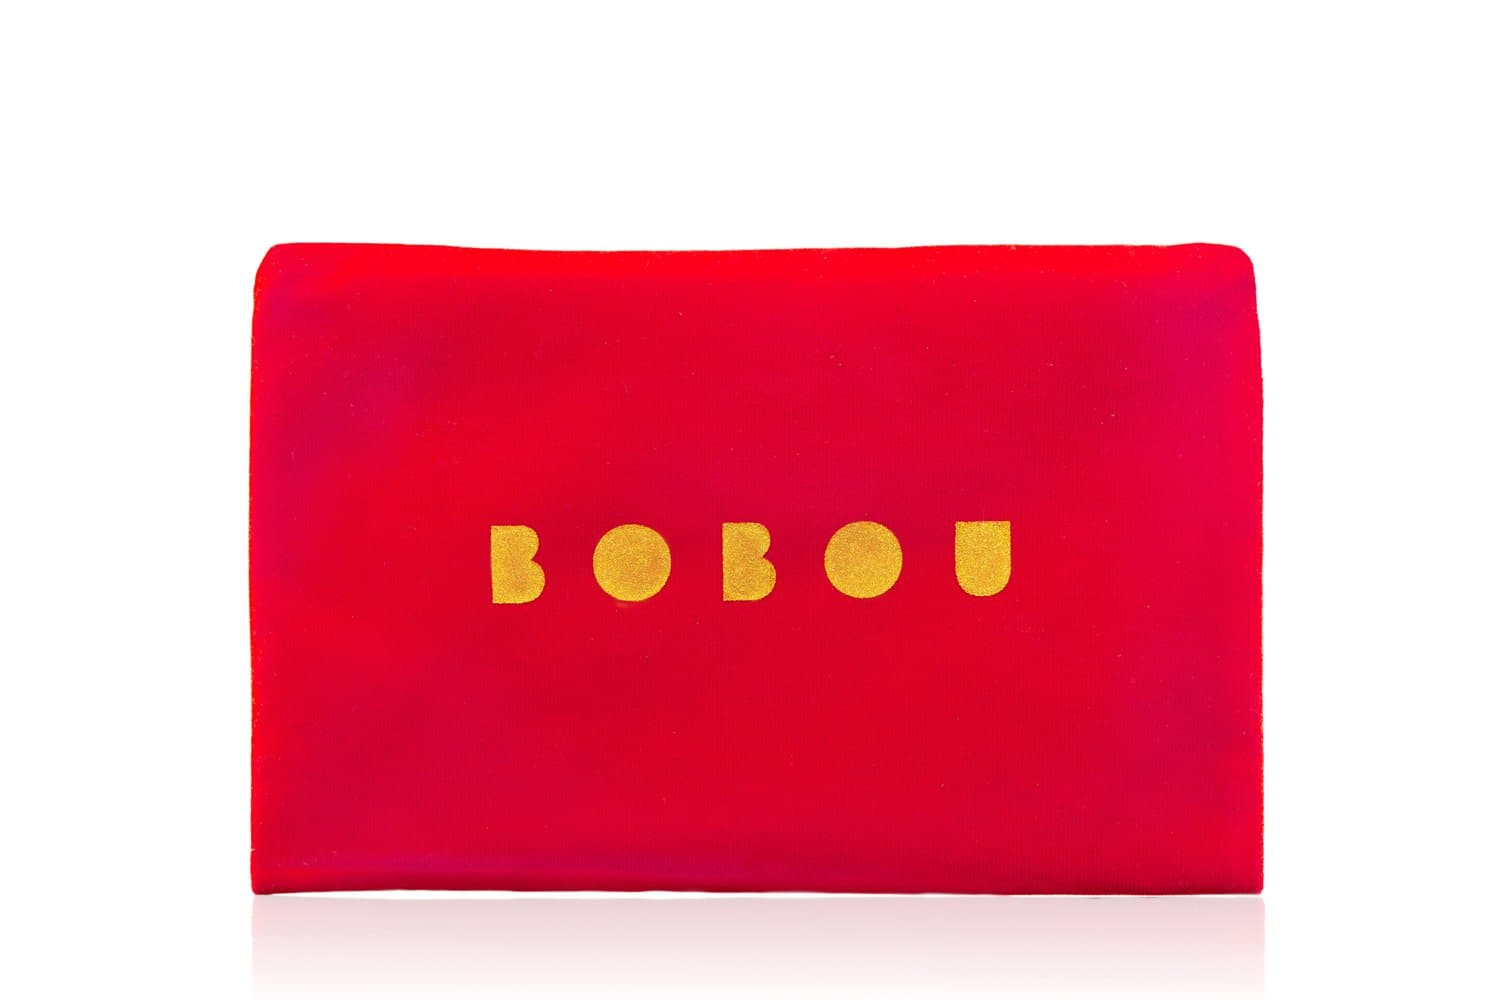 BOBOU VELVET MAKEUP BRUSH POUCH - Boboubeauty